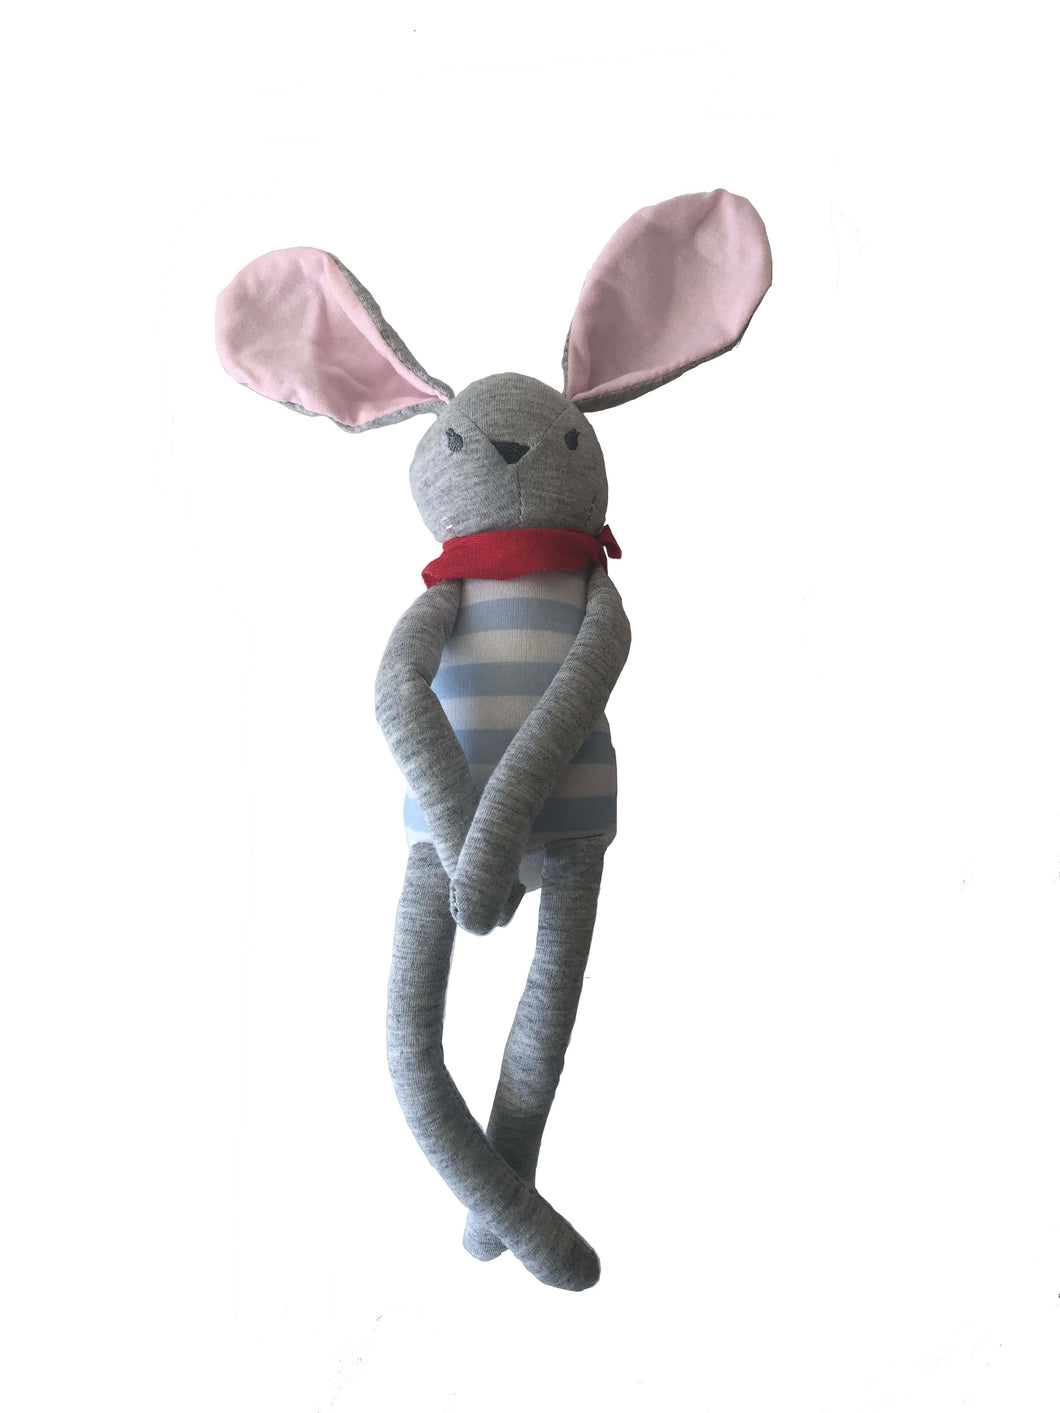 The Be Good Bunny Replacement Bunny